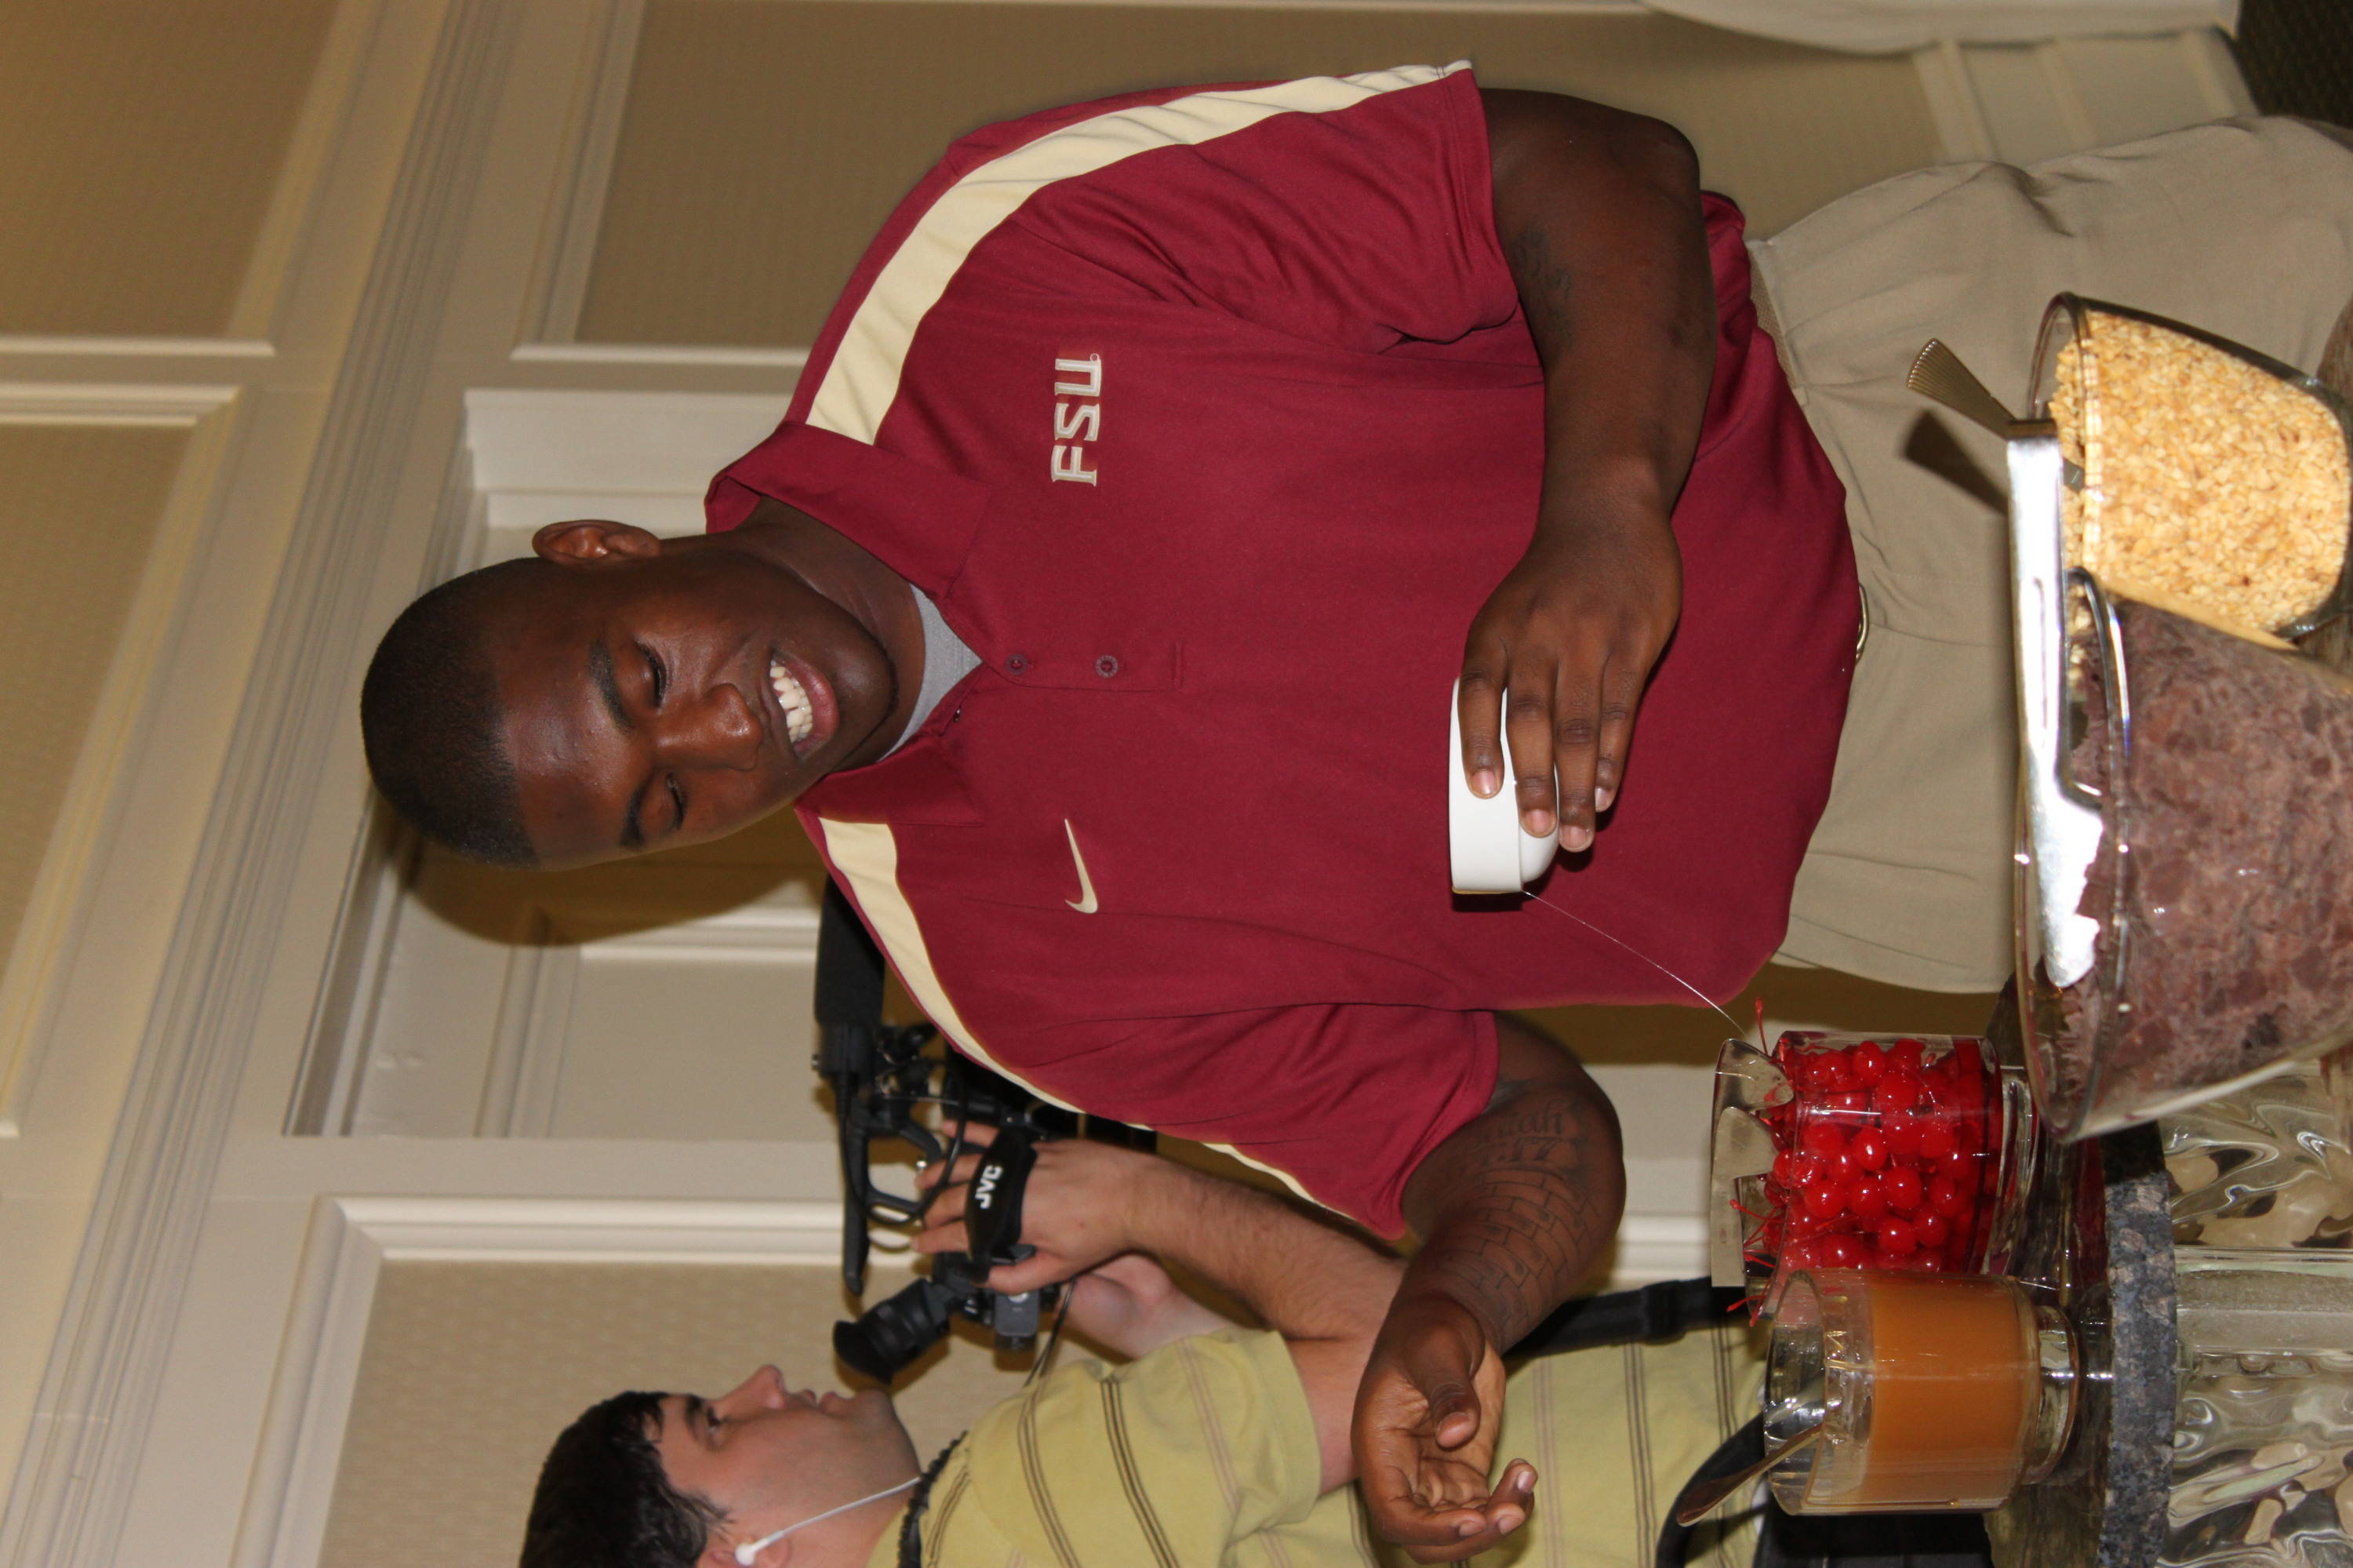 After the first round of interviews, Brandon Jenkins took a little break at the ice cream social station ...